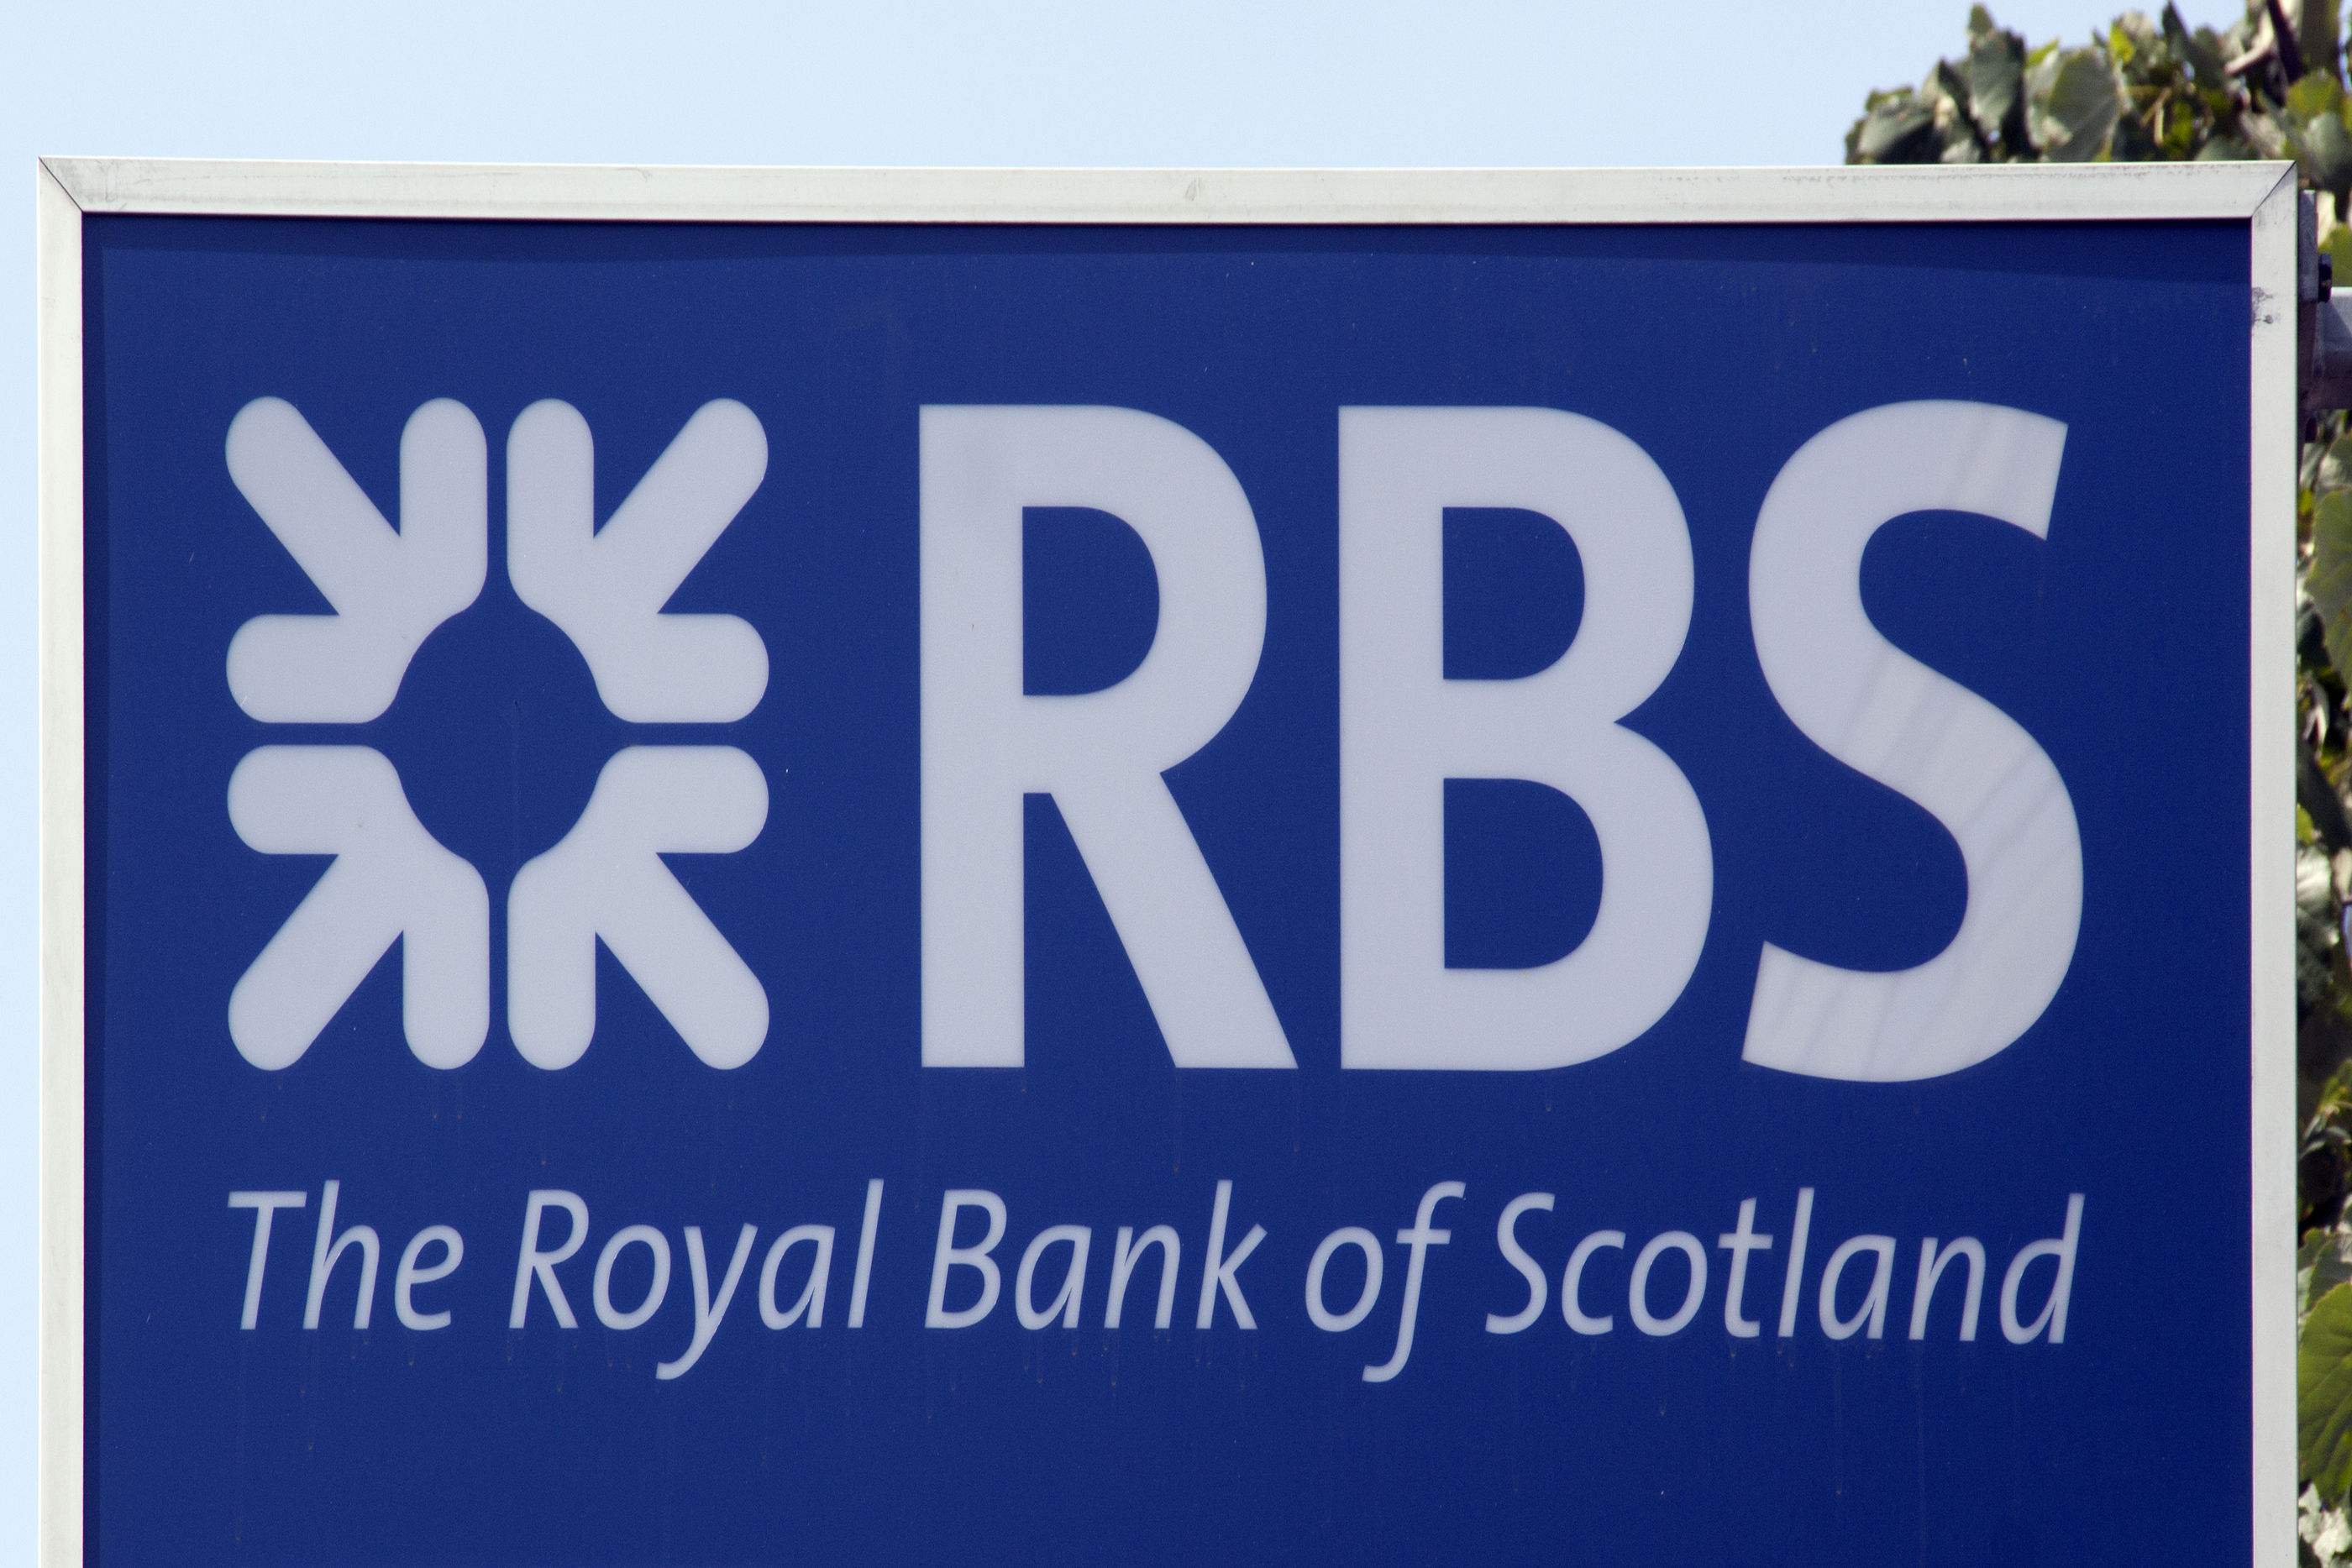 nationalisation of royal bank of scotland Lawson urges full nationalisation of rbs share on twitter (opens new window) share on facebook (opens new window)  has urged george osborne to fully nationalise the royal bank of scotland.